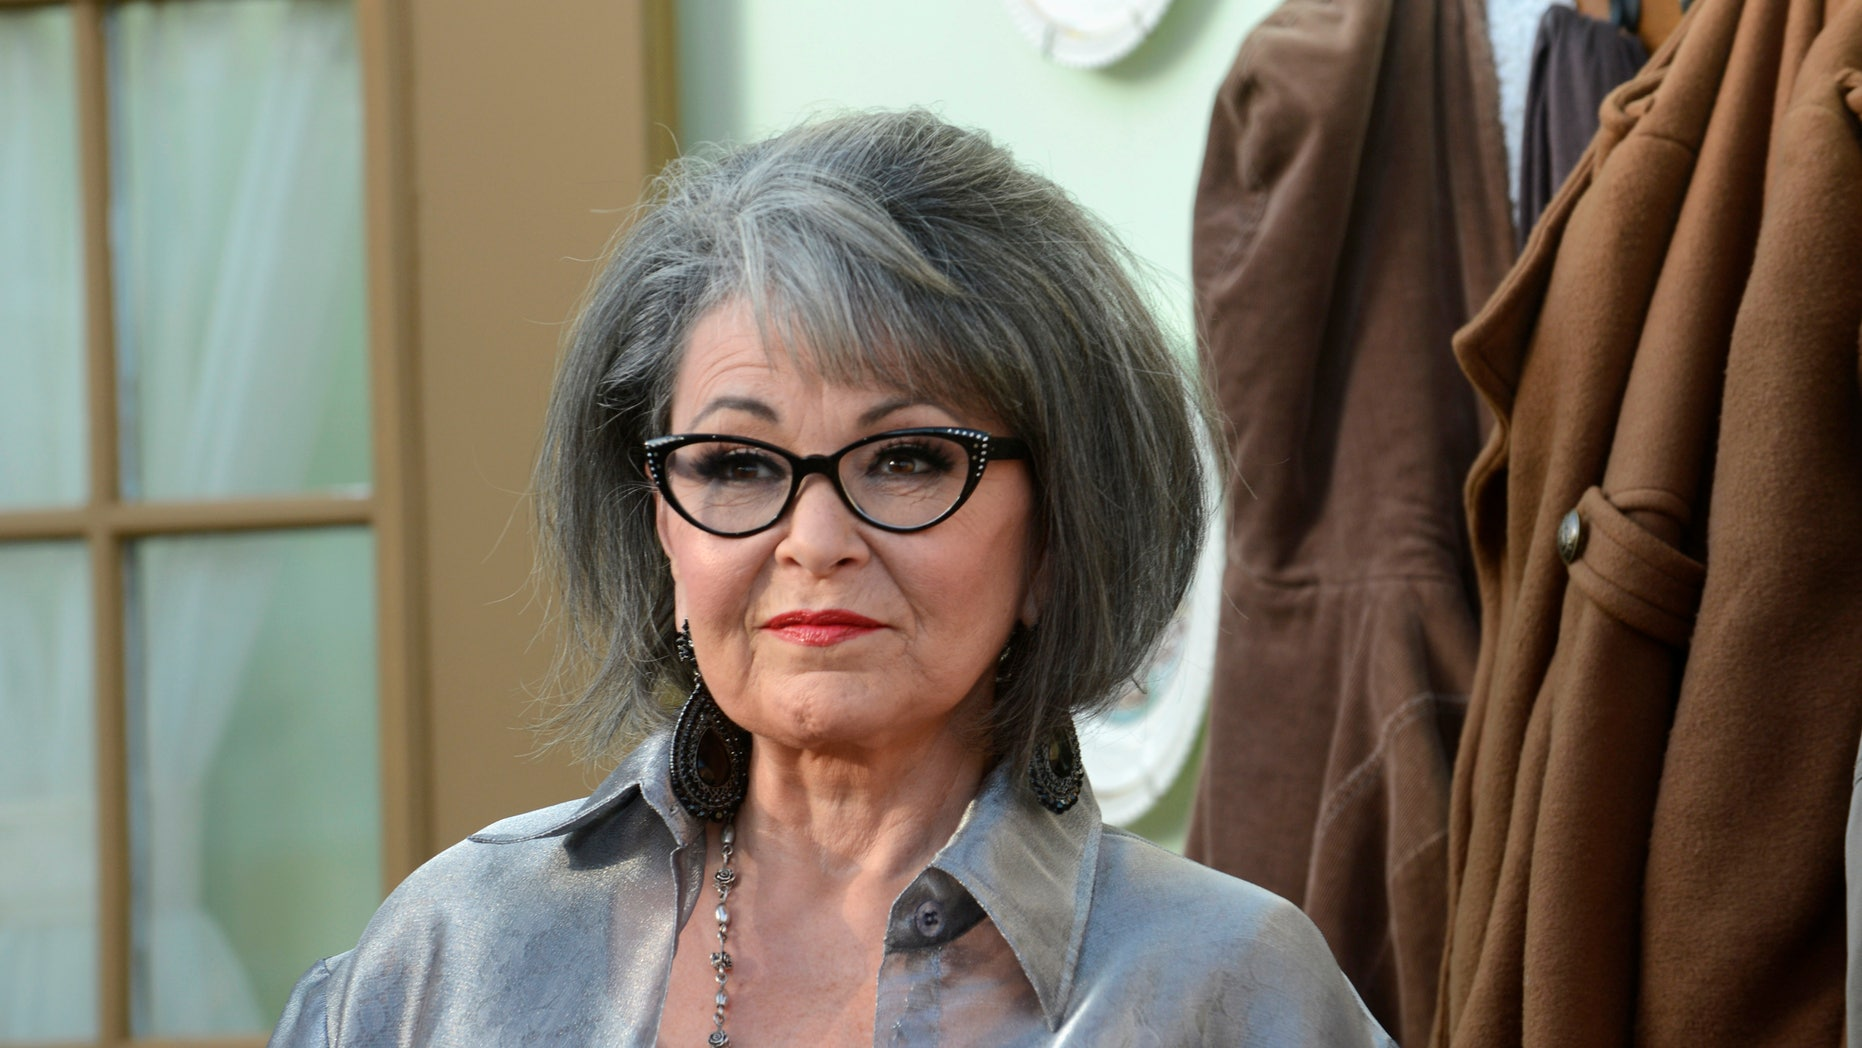 Watch Roseanne Barr video